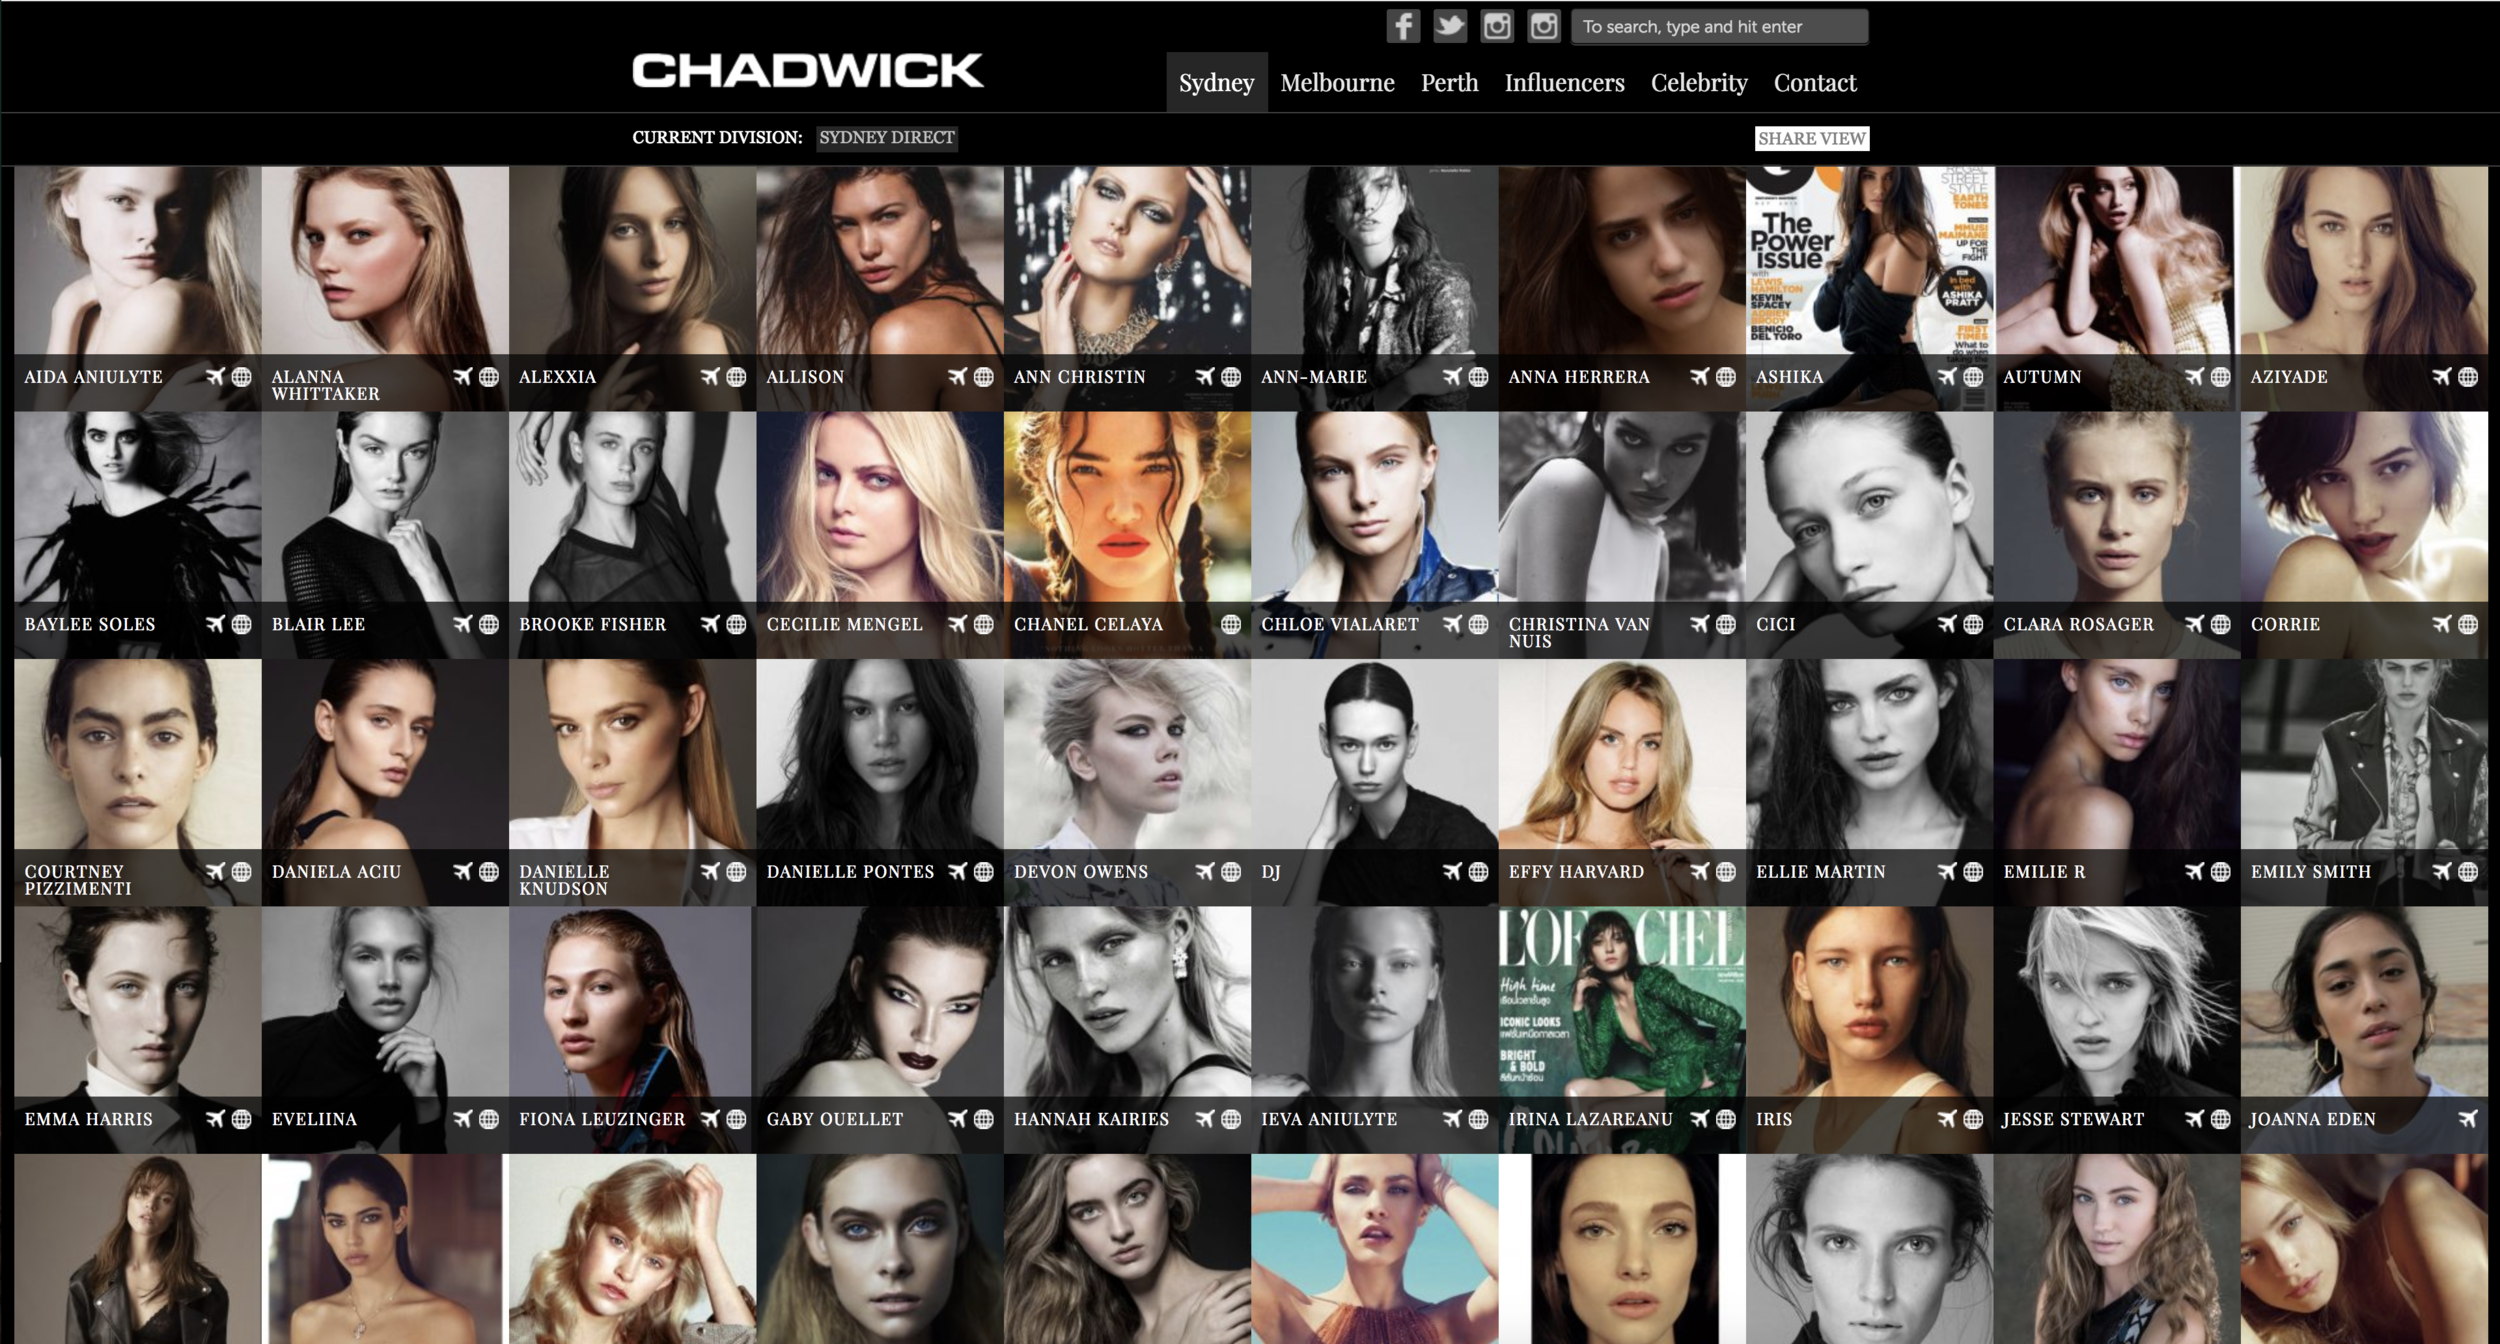 Using http://chadwickmodels.com to find inspiration for faces/facial features.